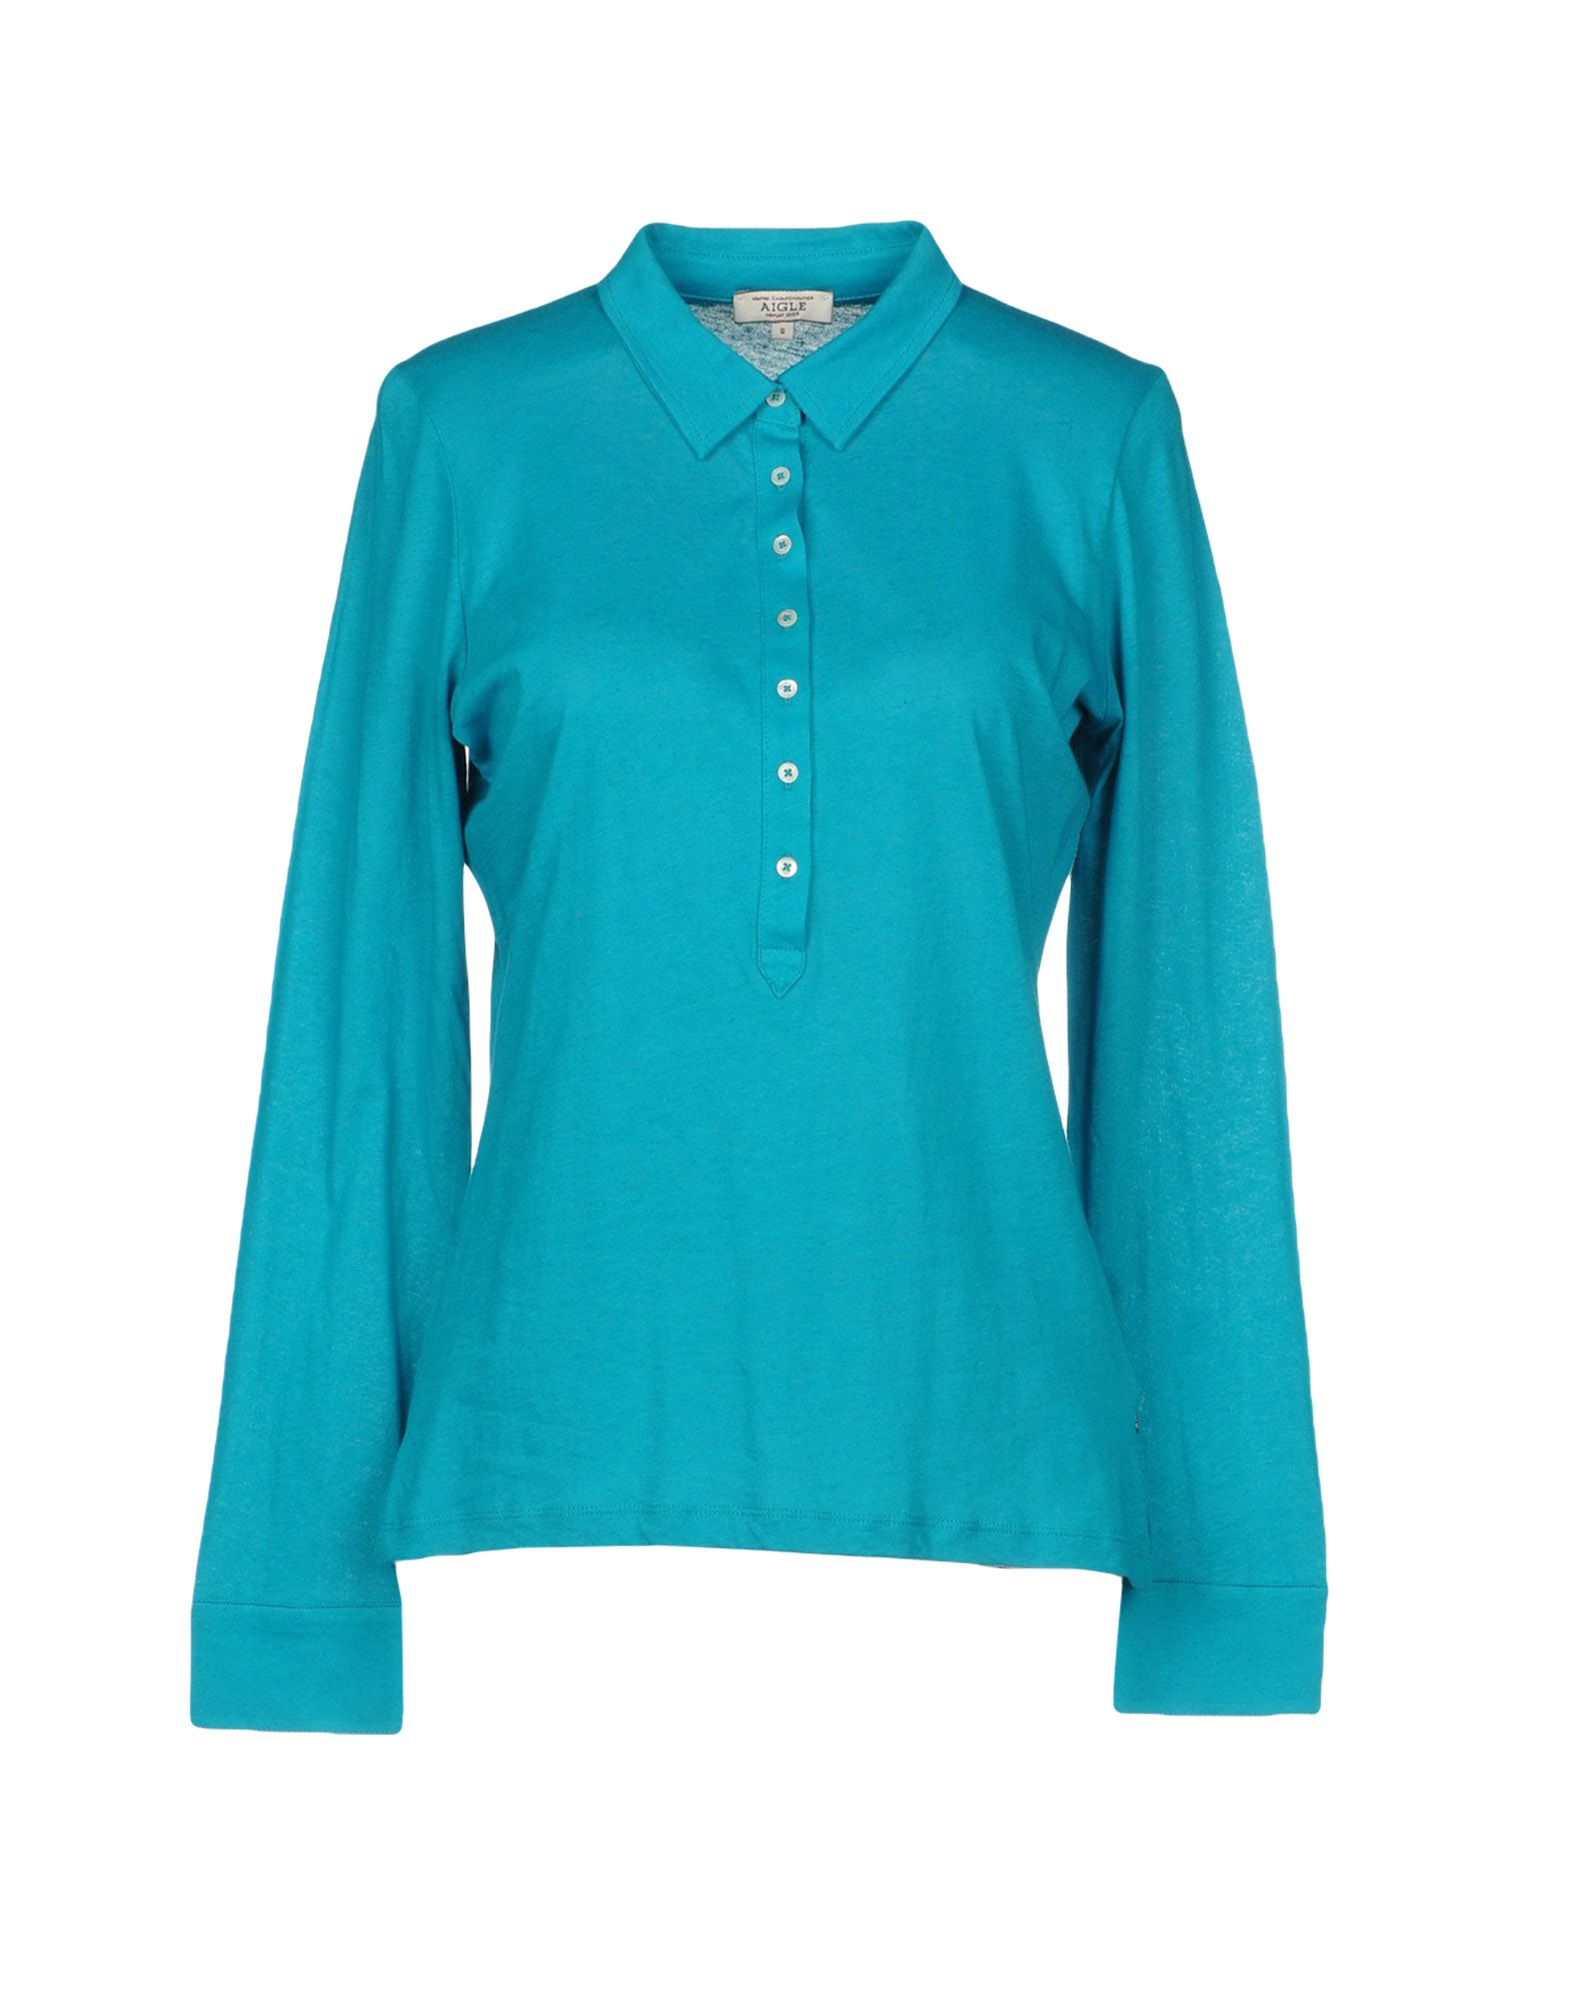 AIGLE Polo Shirt in Turquoise